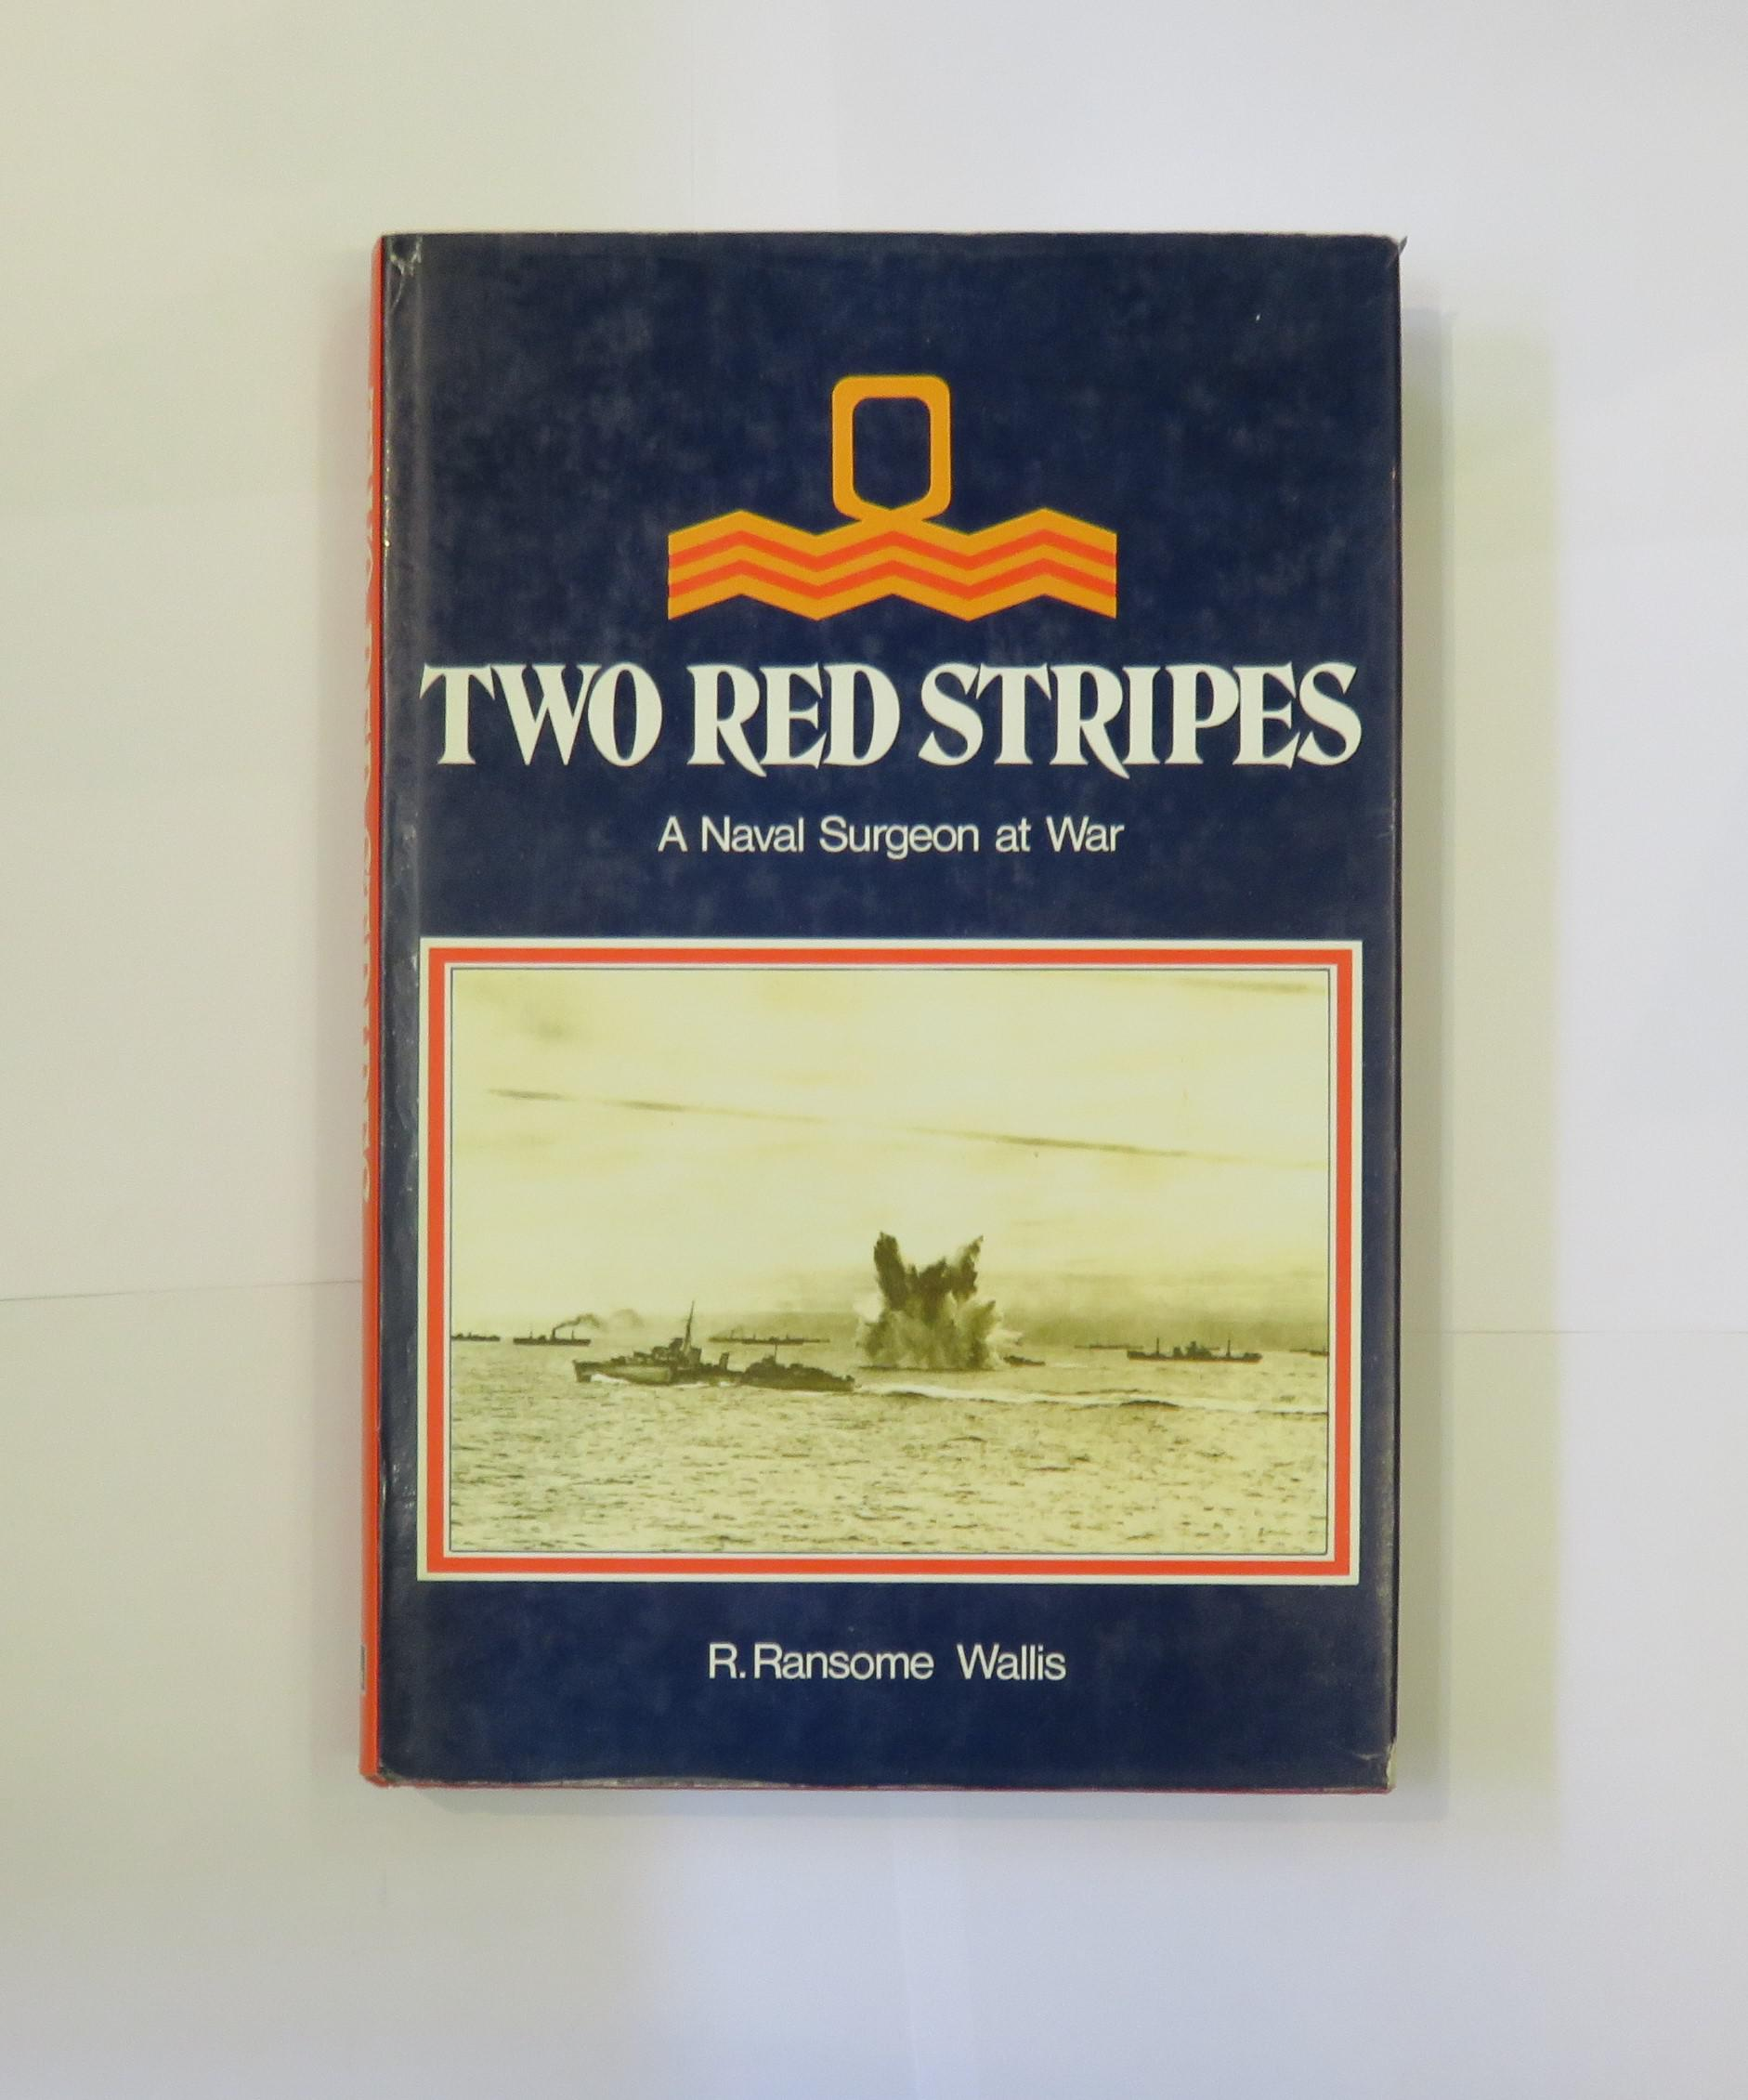 Two Red Stripes